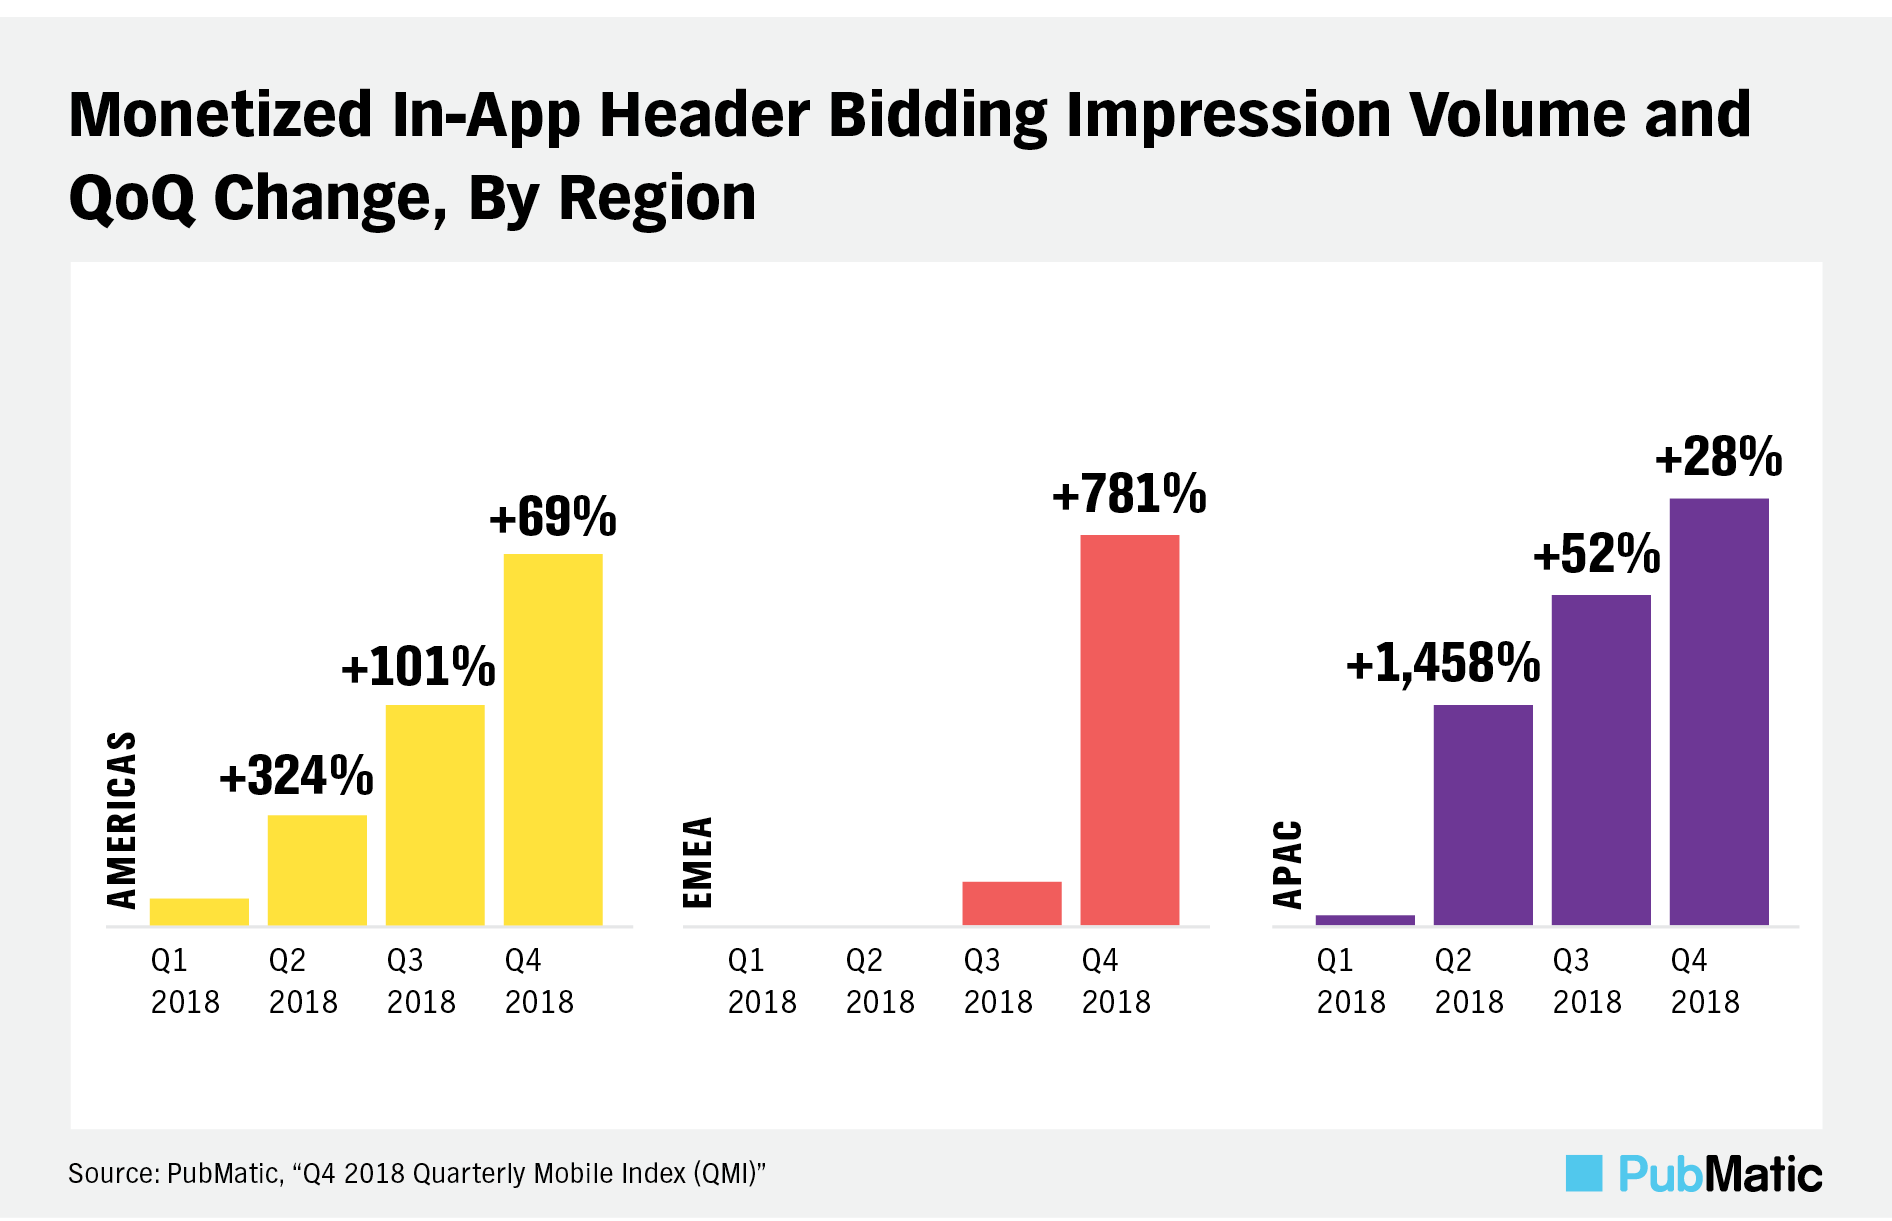 in-app header bidding